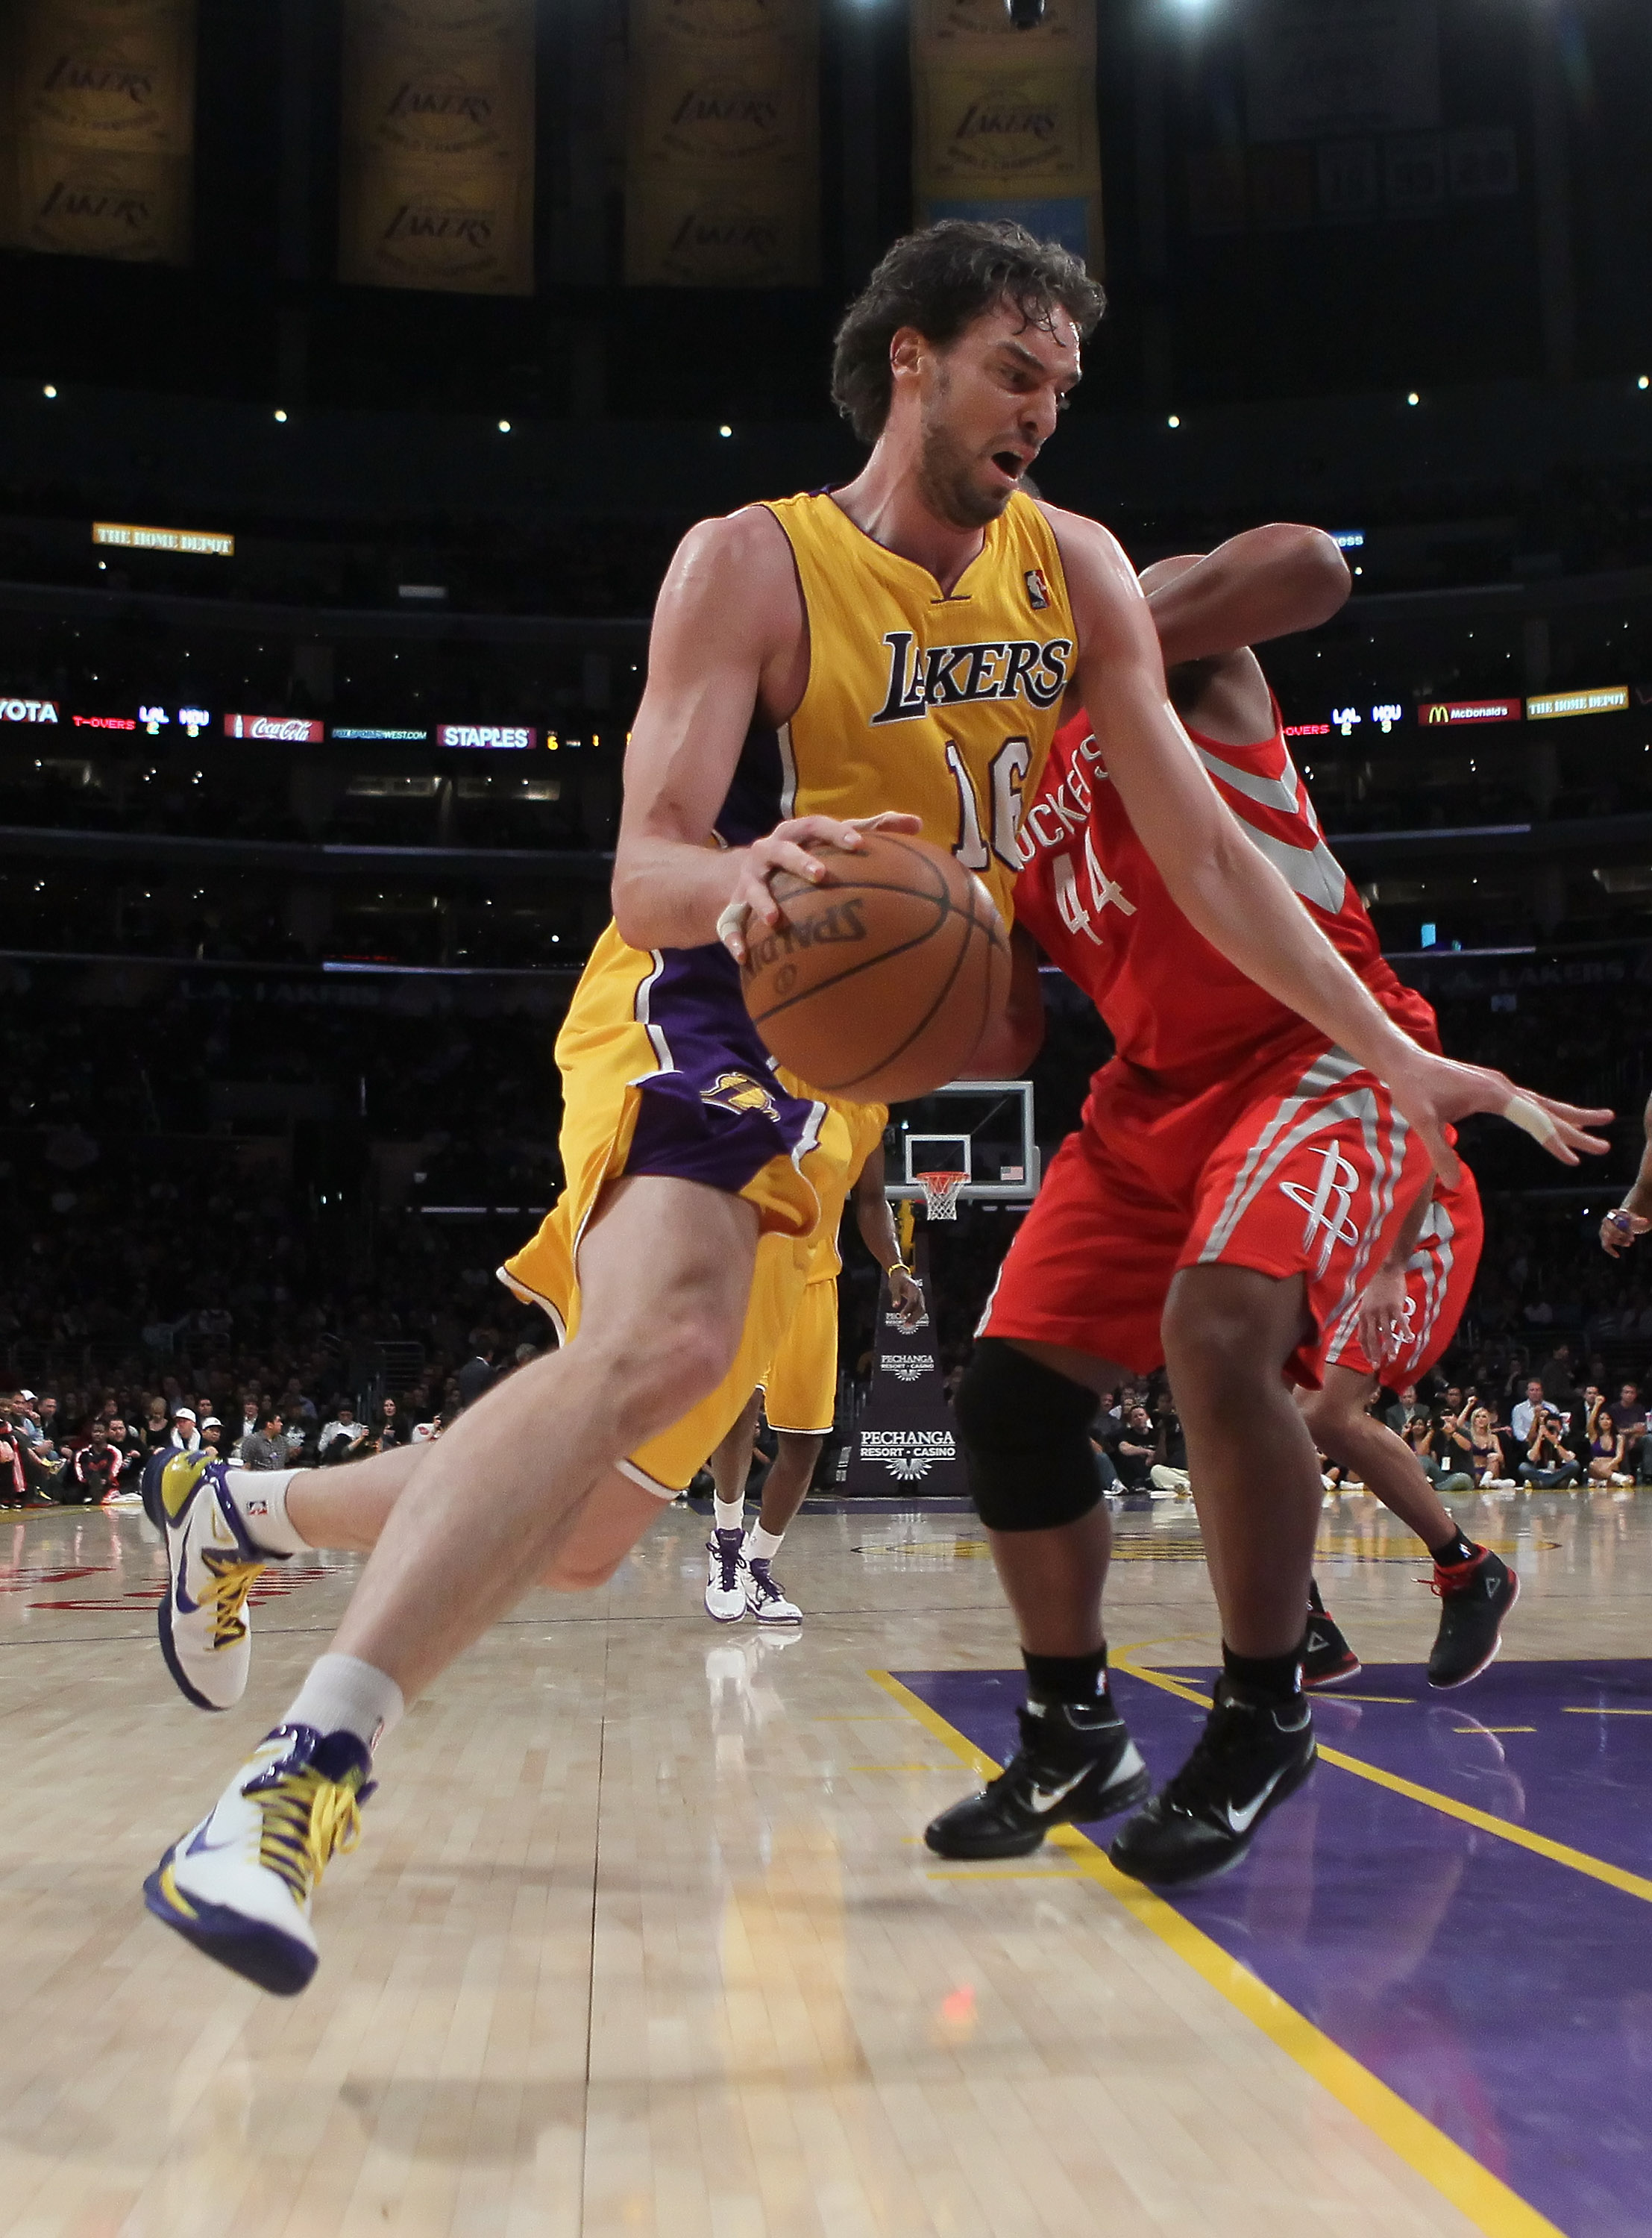 LOS ANGELES, CA - FEBRUARY 01:  Pau Gasol #16 of the Los Angeles Lakers drives around Chuck Hayes #44 of the Houston Rockets in the first half at Staples Center on February 1, 2011 in Los Angeles, California. The Lakers defeated the Rockets 114-106. NOTE